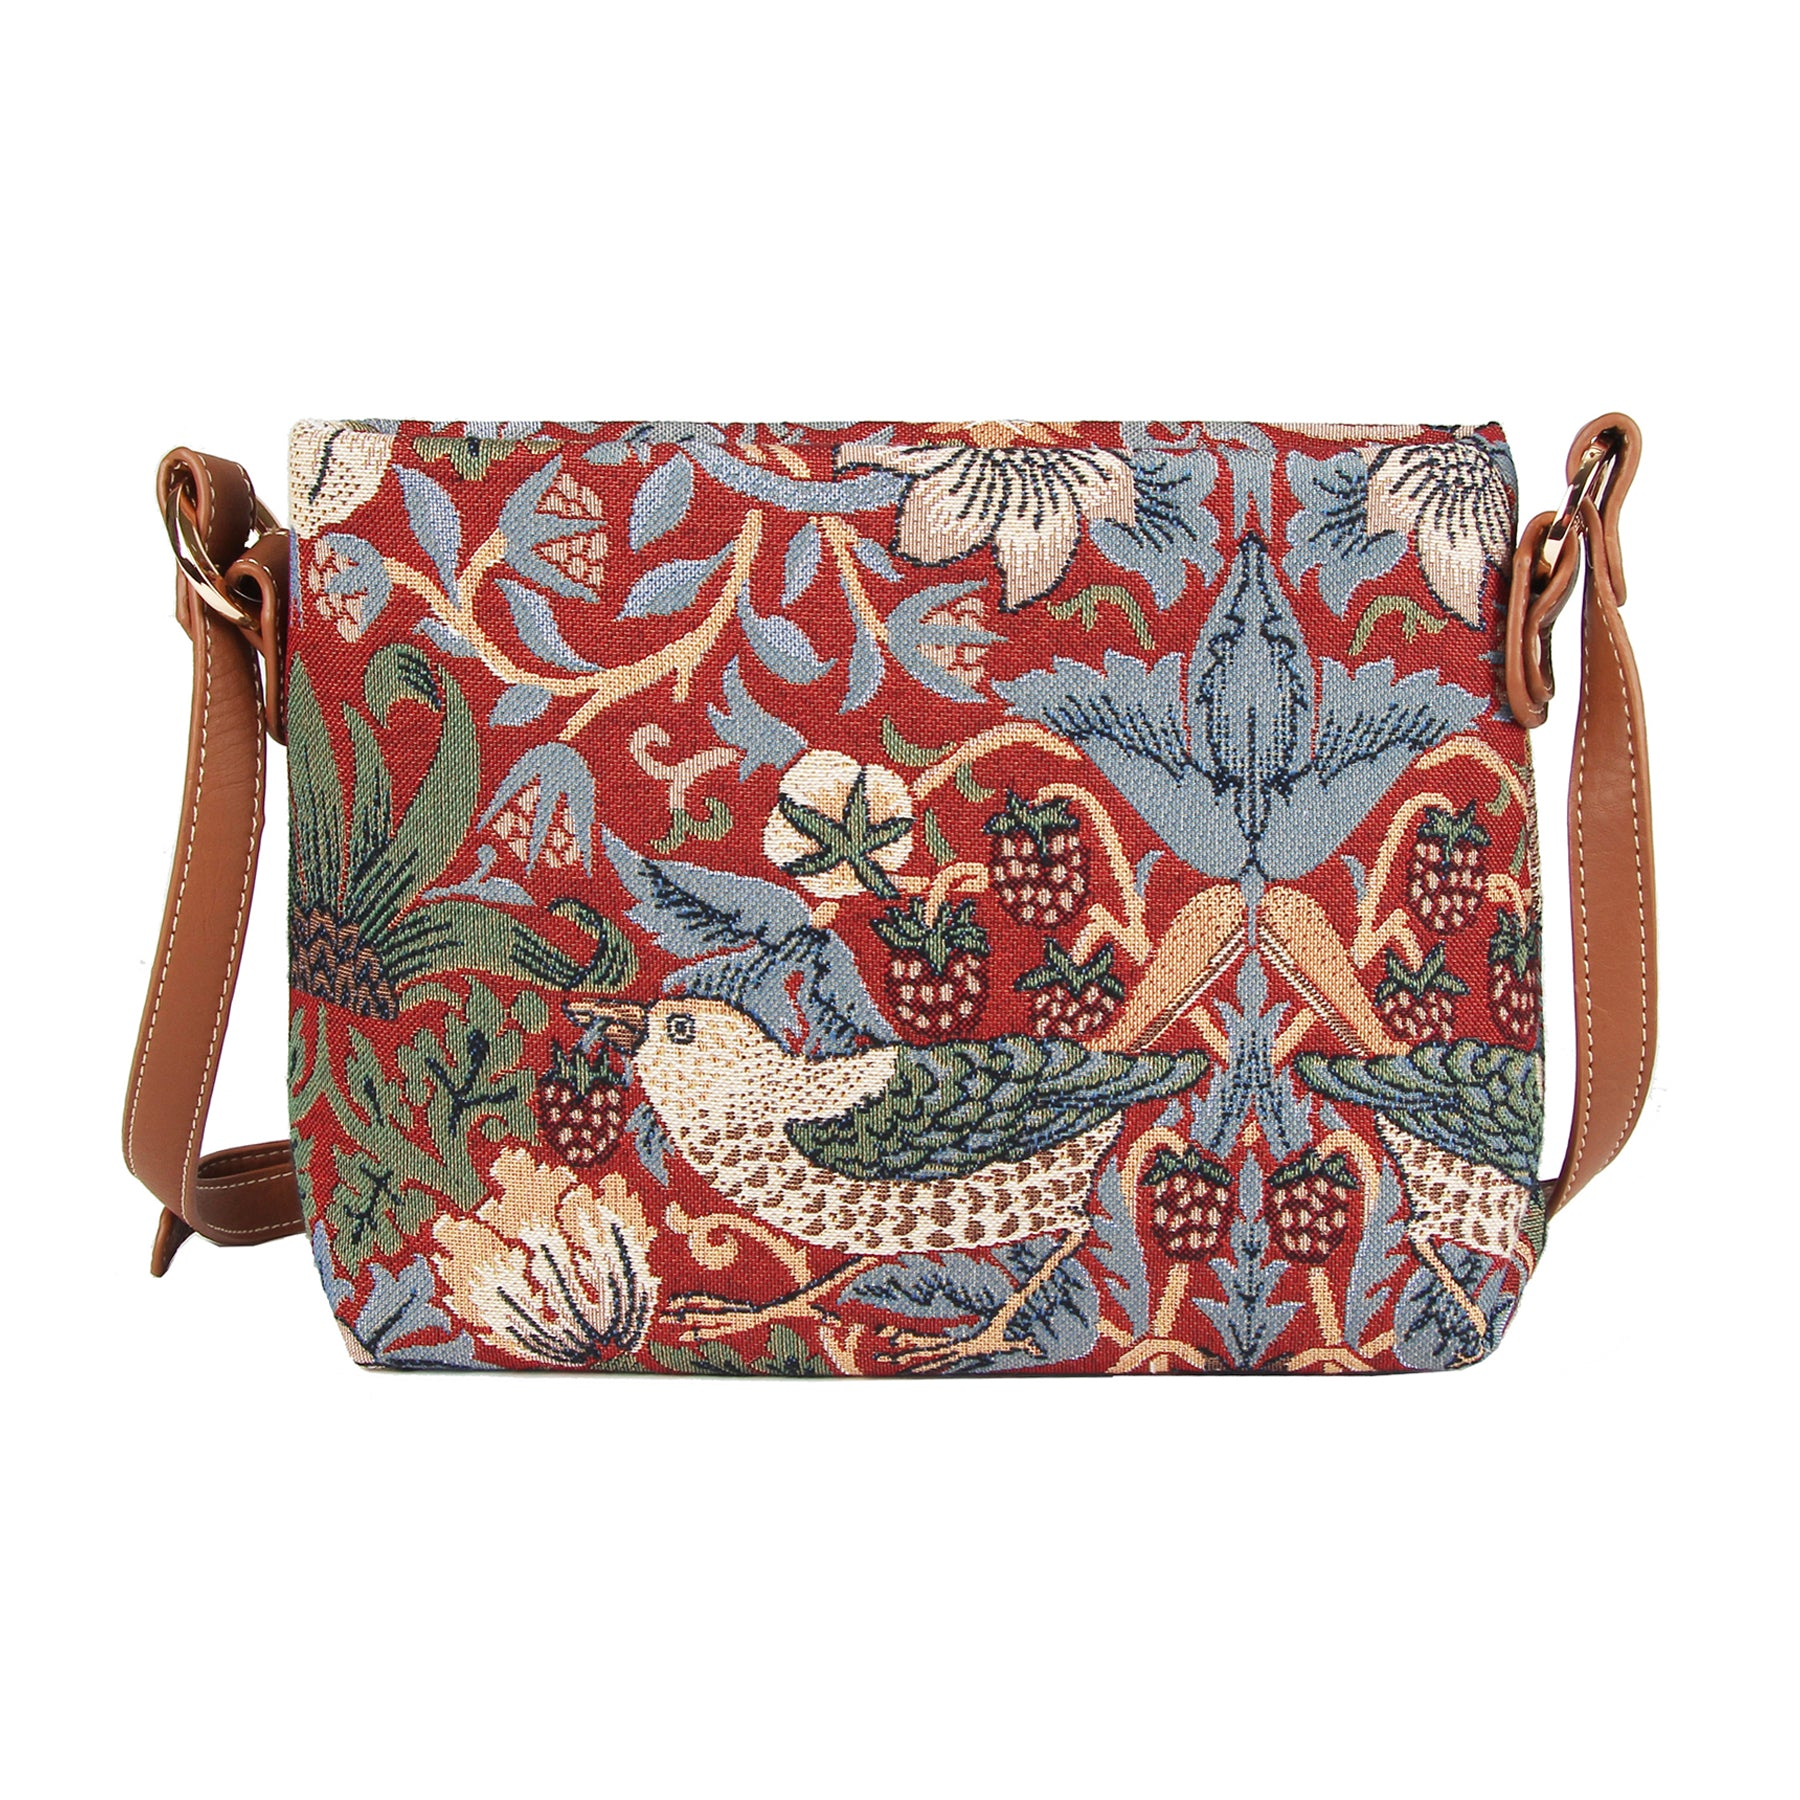 Strawberry Thief Crossbody Bag in Red